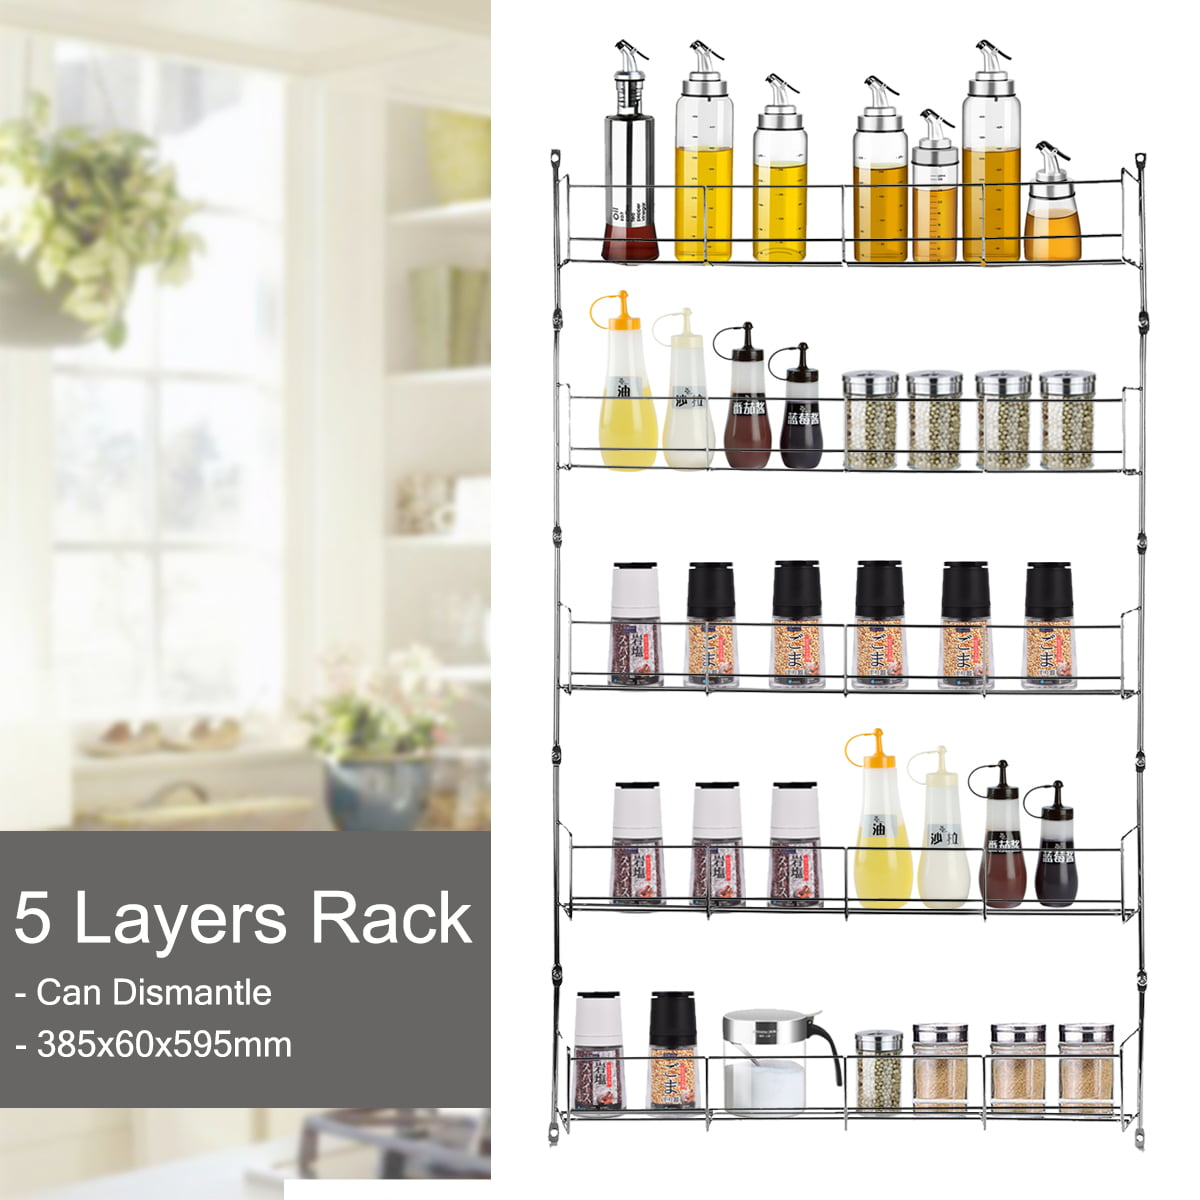 3-6 Tier Spice Rack Organizer Wall Mount Storage Kitchen Shelf Pantry Jar Holder